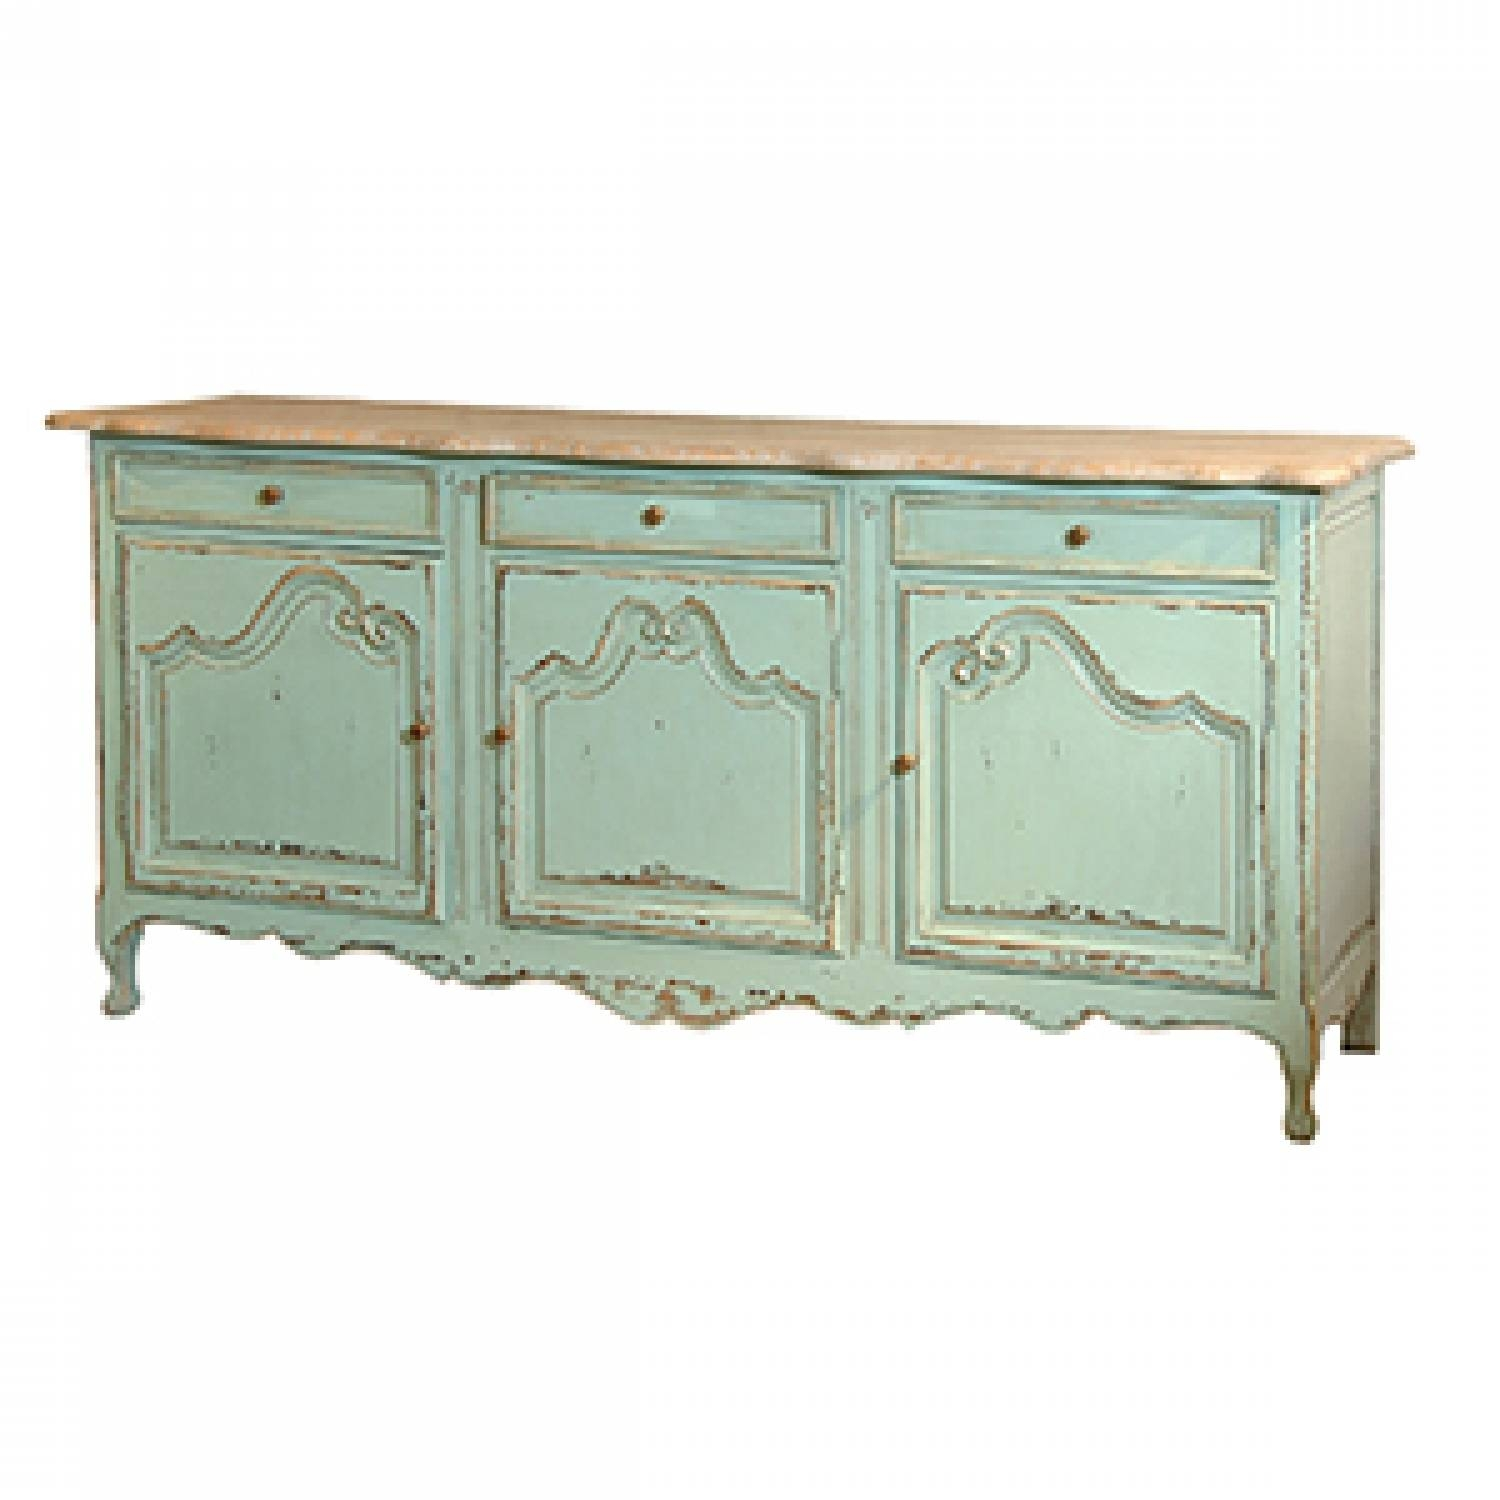 Stylish Distressed Sideboards - Buildsimplehome within Distressed Sideboards (Image 15 of 15)